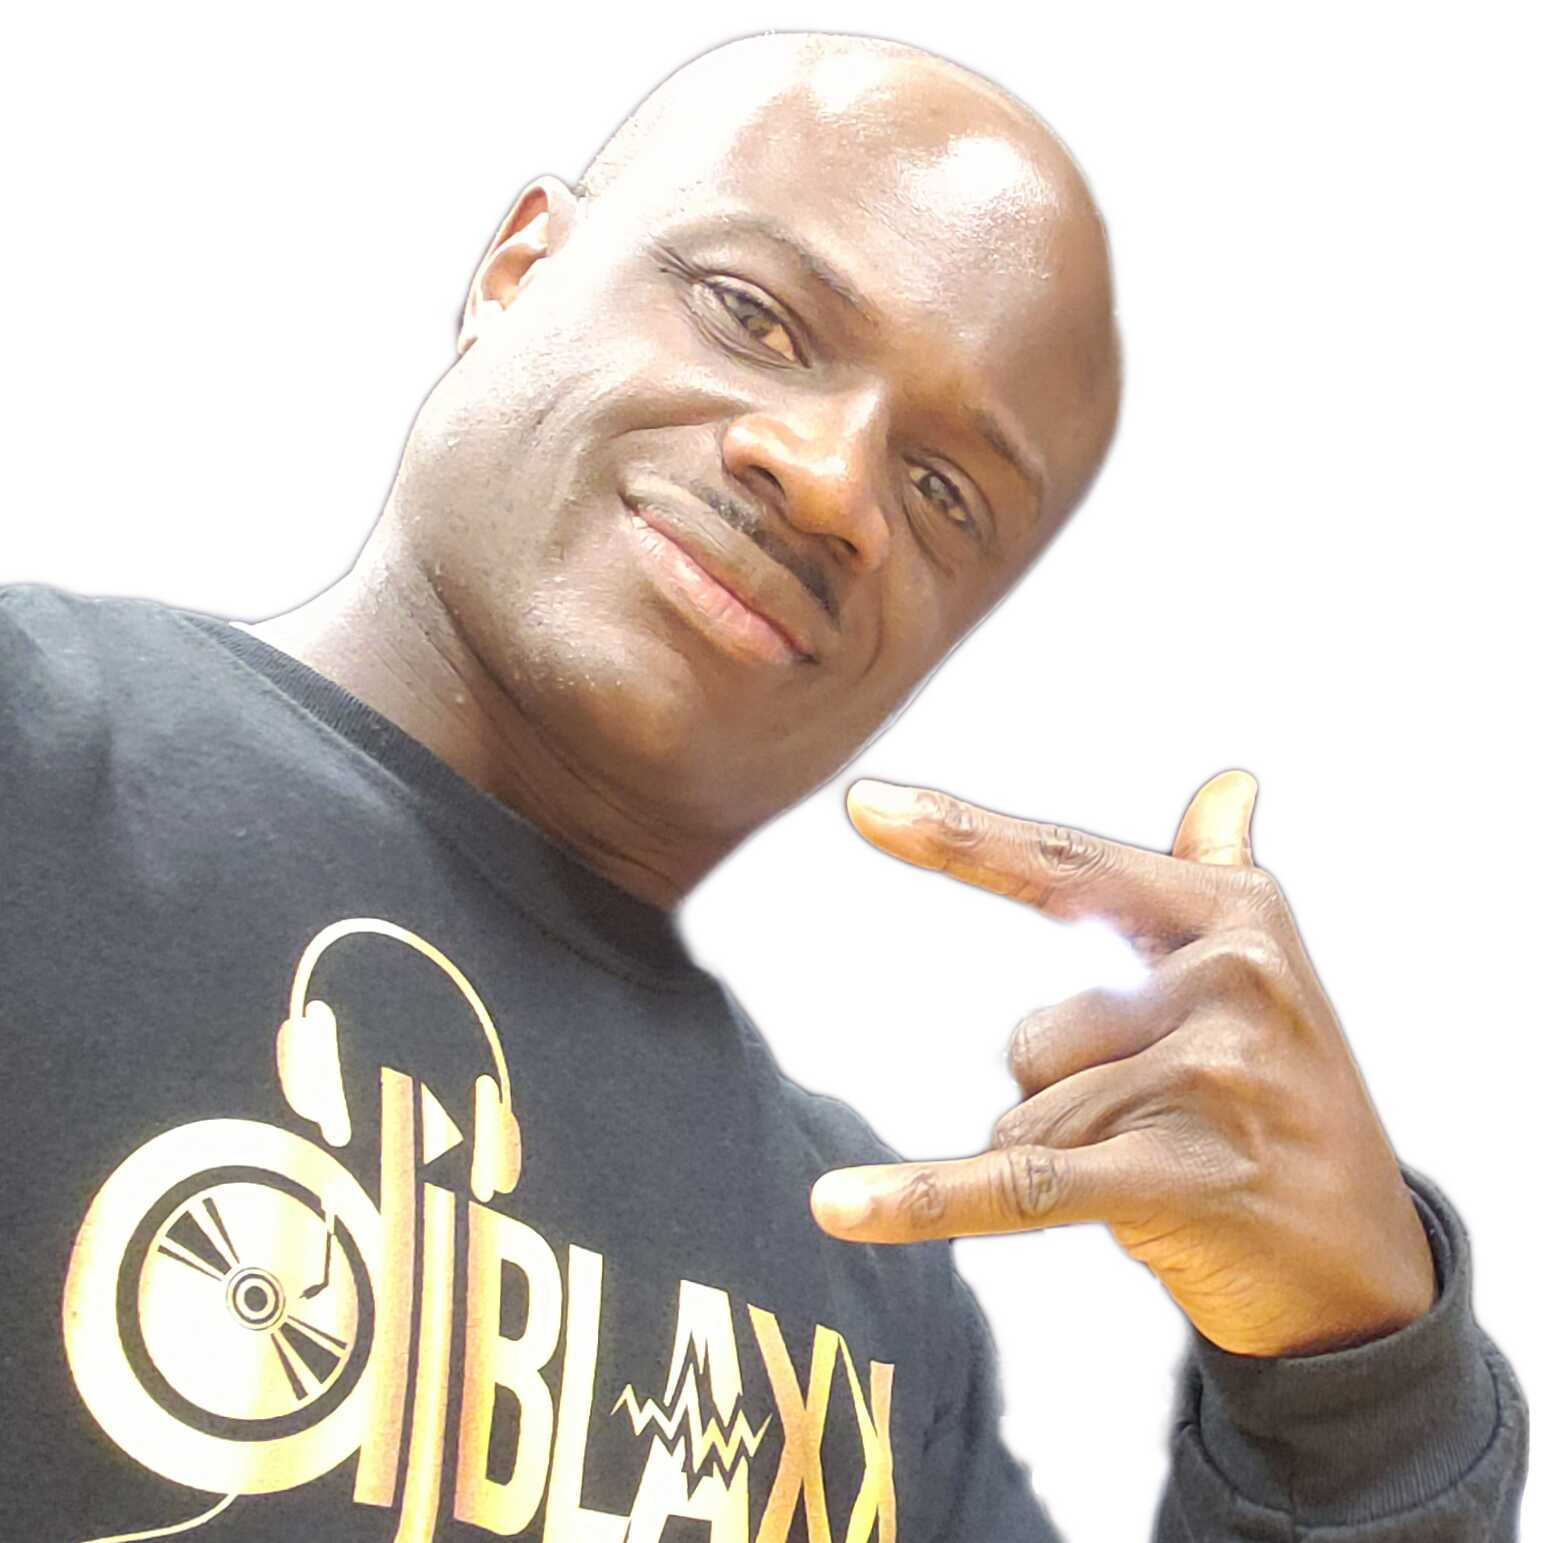 DJBlaxx of ADIQUEST Music, profile image